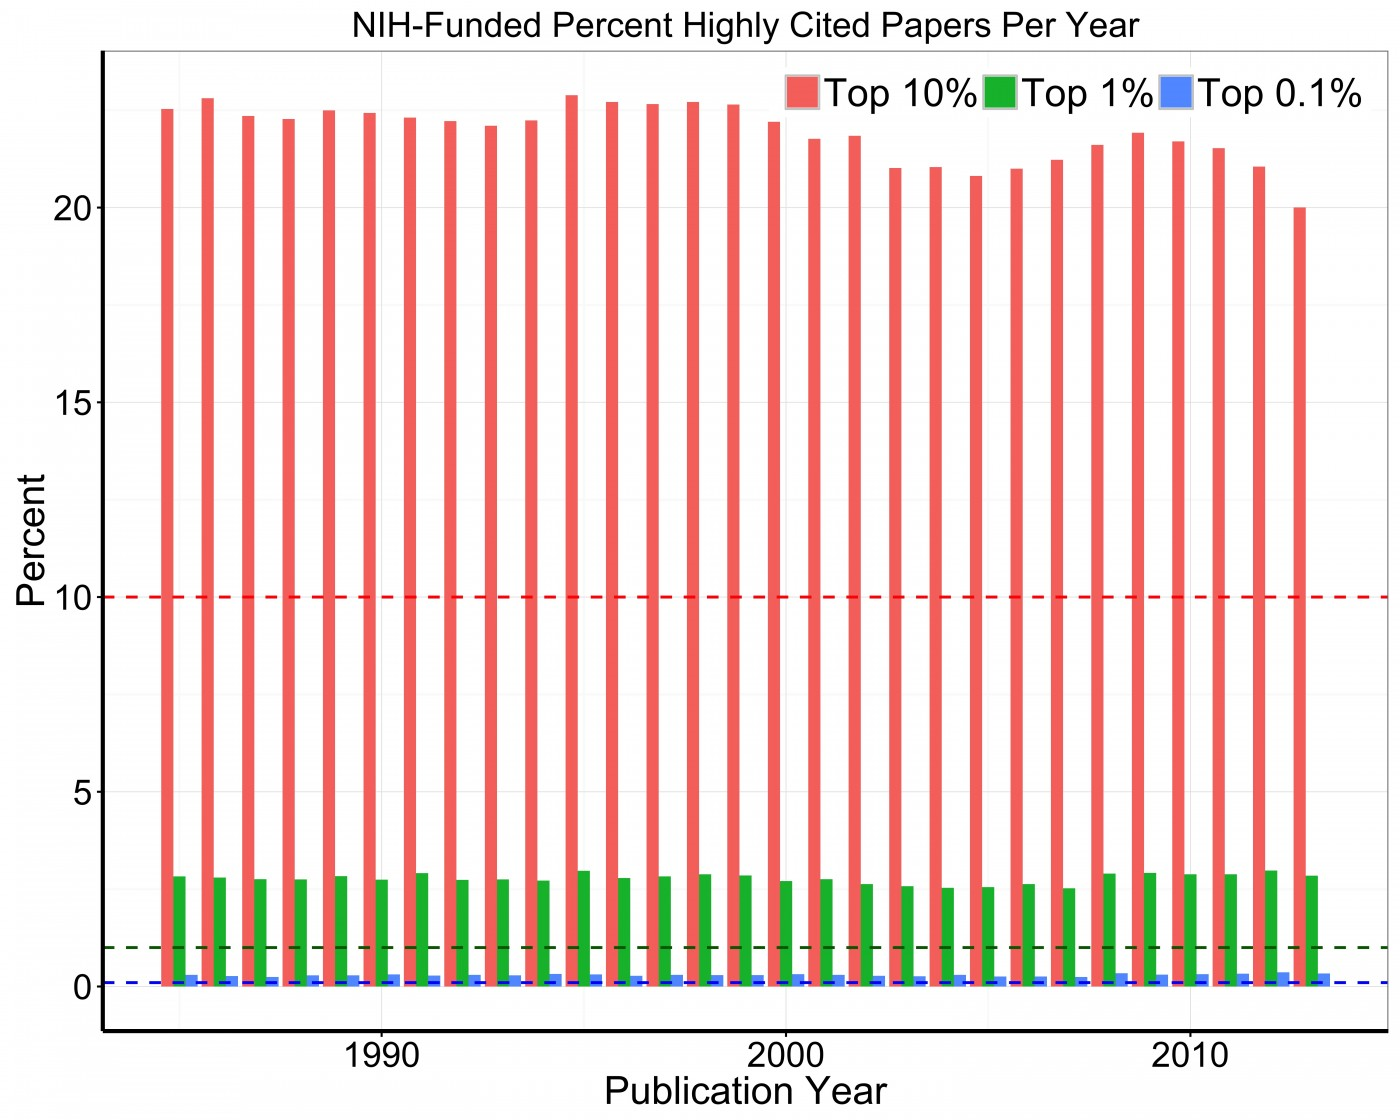 020 Research Paper Figure Nih Percent Highly Papers Per Year Archaicawful Cited Works Mla Example 1400